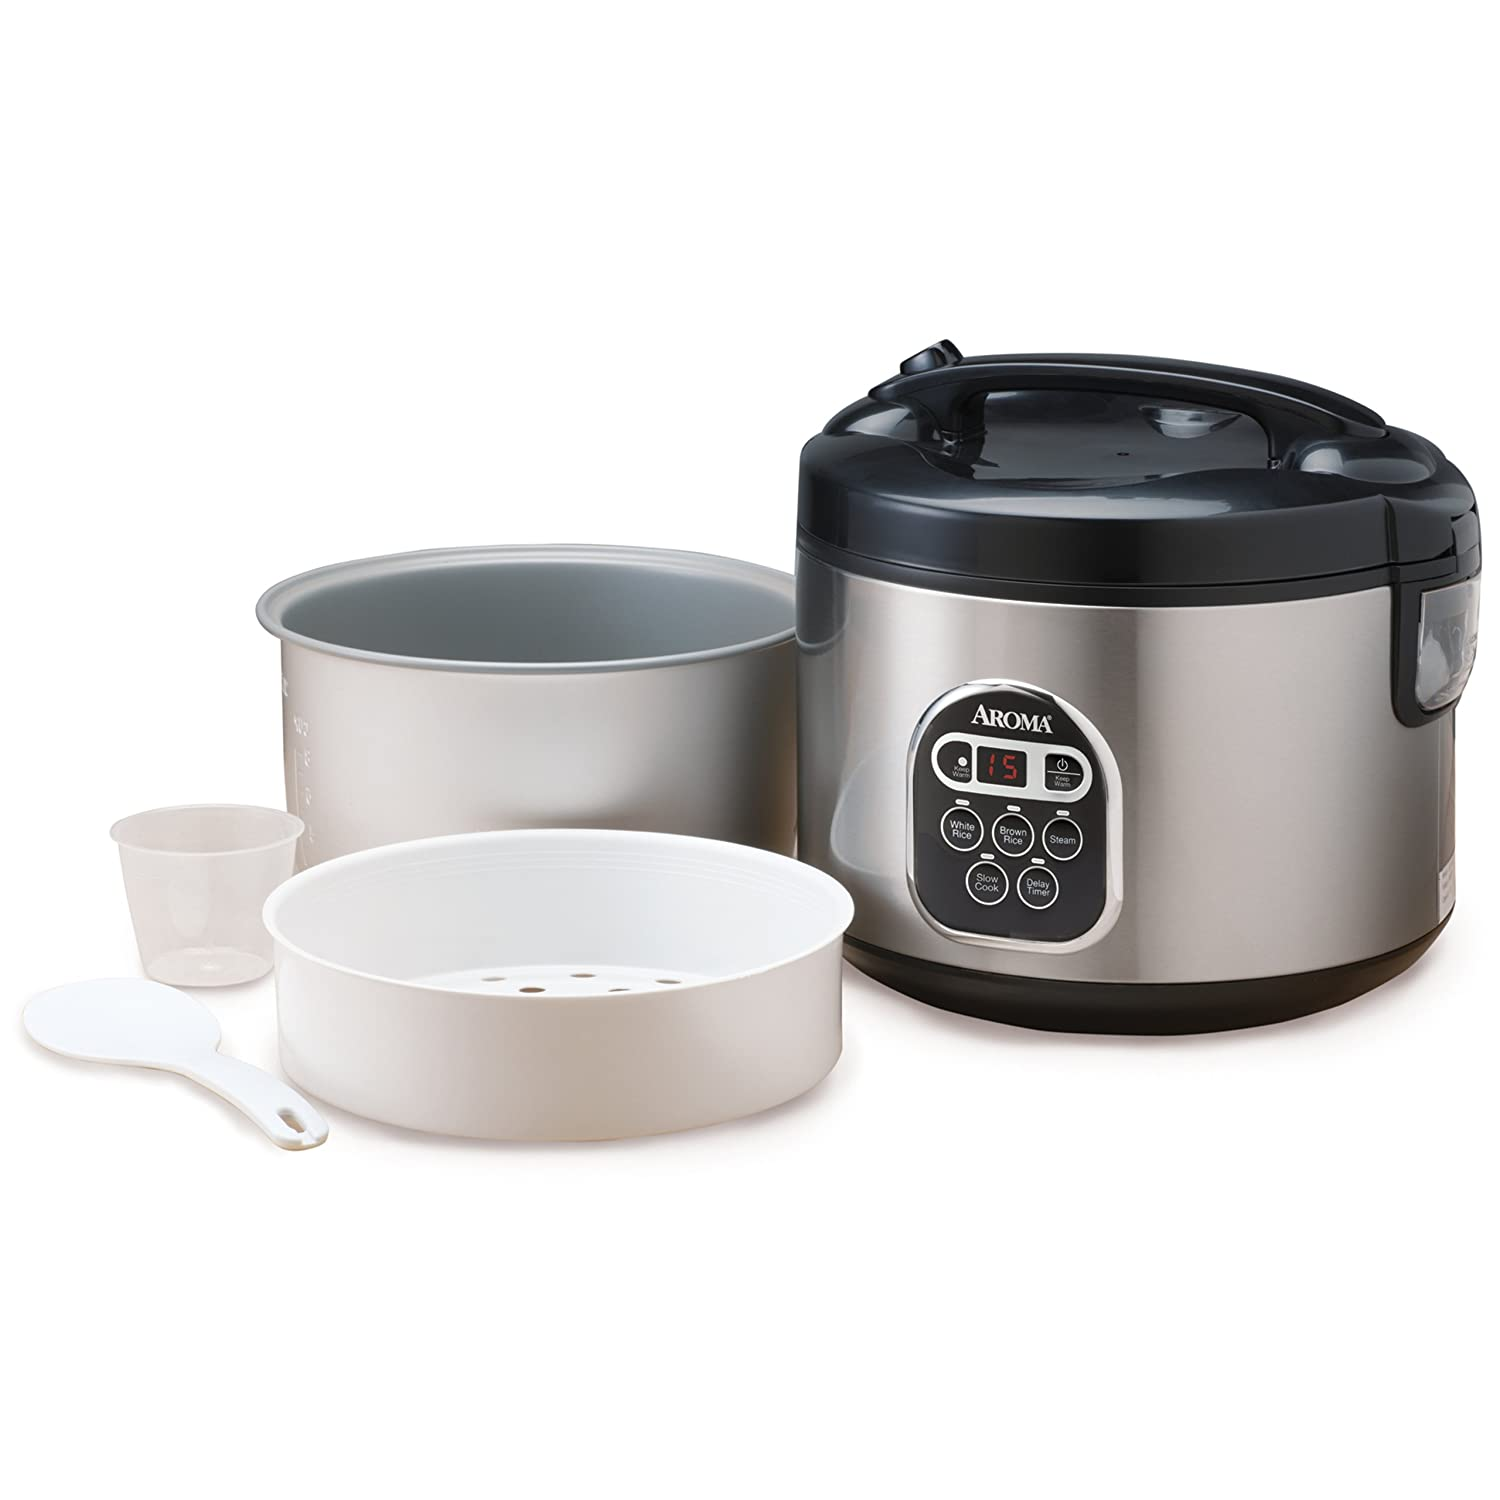 new aroma arc 150sb 10 cup uncooked 20 cup cooked digital rice cooker and ebay. Black Bedroom Furniture Sets. Home Design Ideas